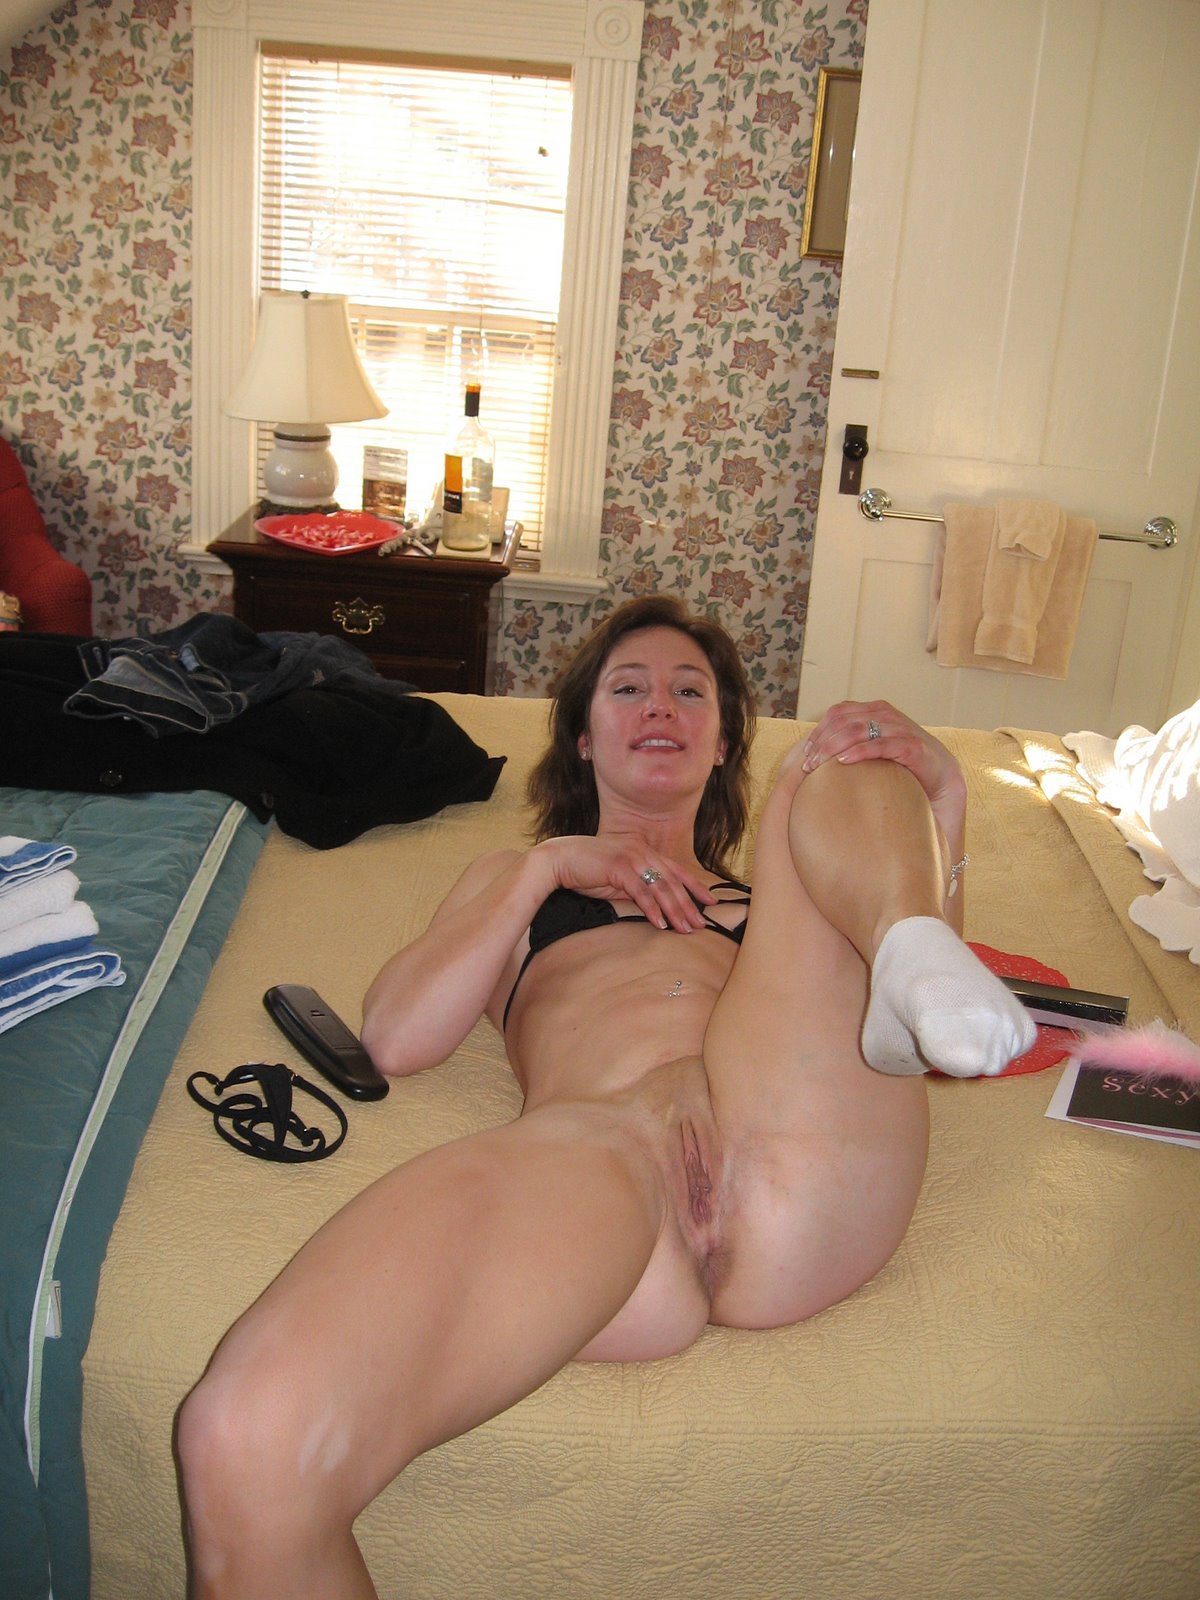 Swing party amateur nude sexy mothers